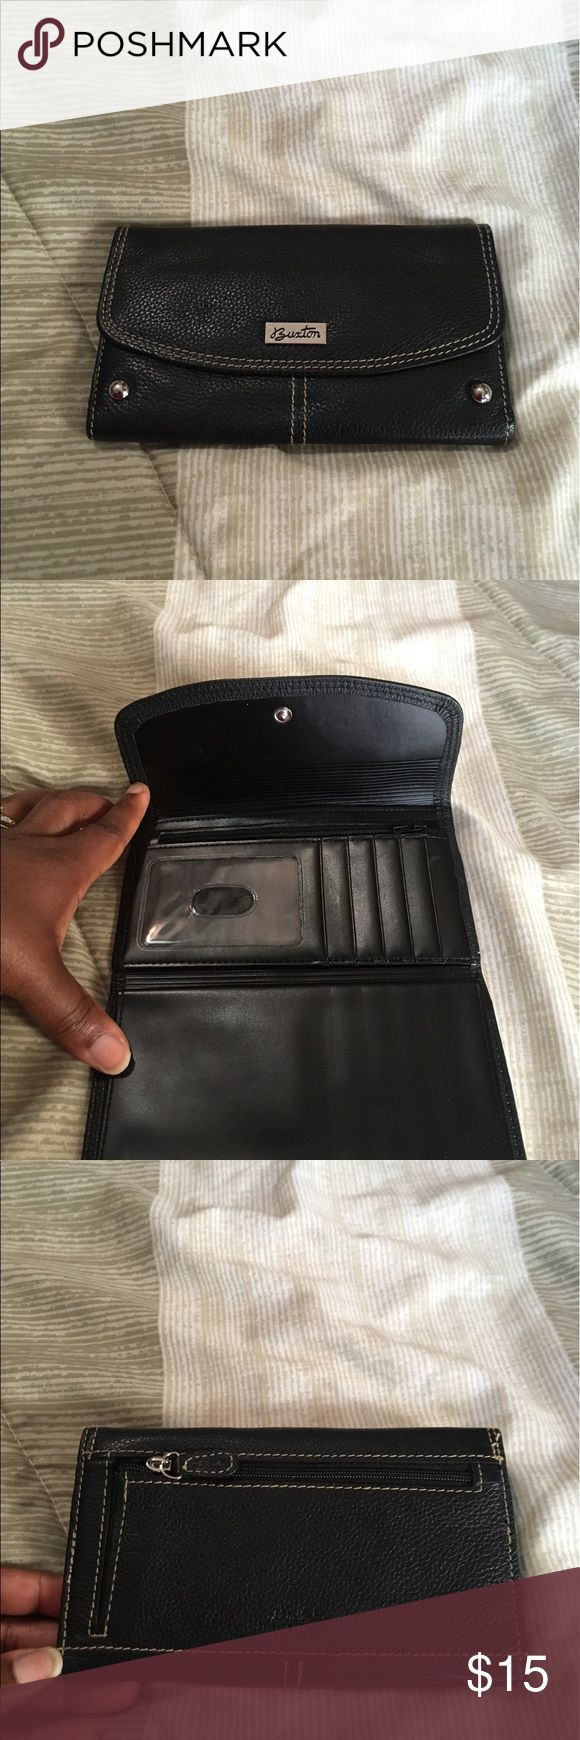 Burton wallet It is  black leather and the condition is excellent Burton Bags Wallets